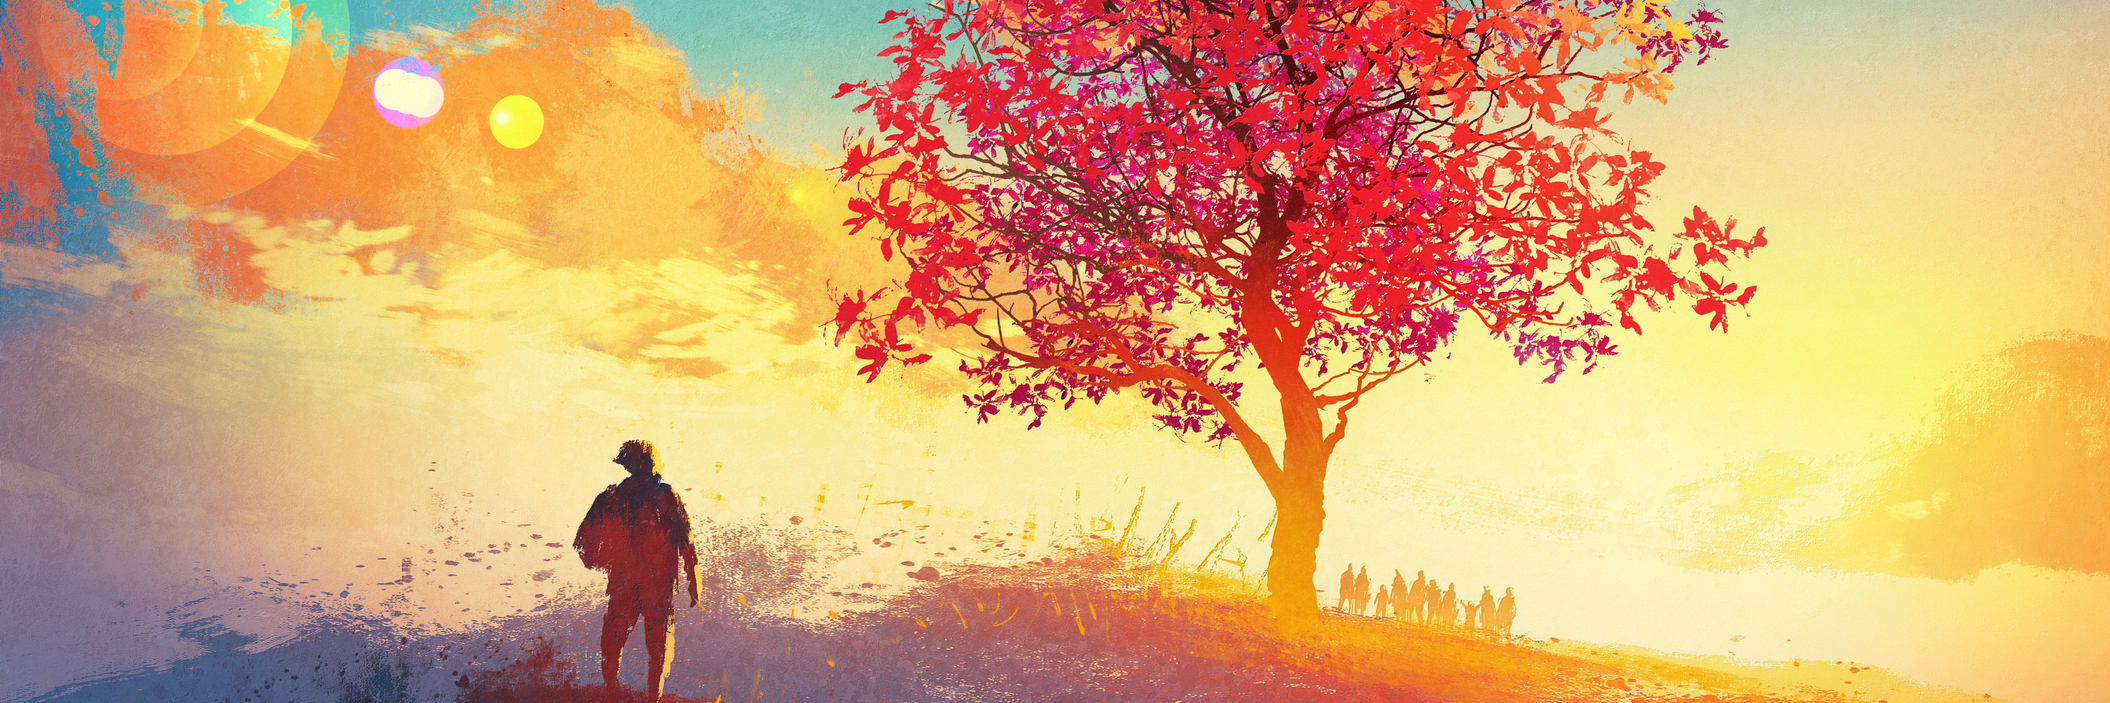 autumn landscape with alone tree on mountain